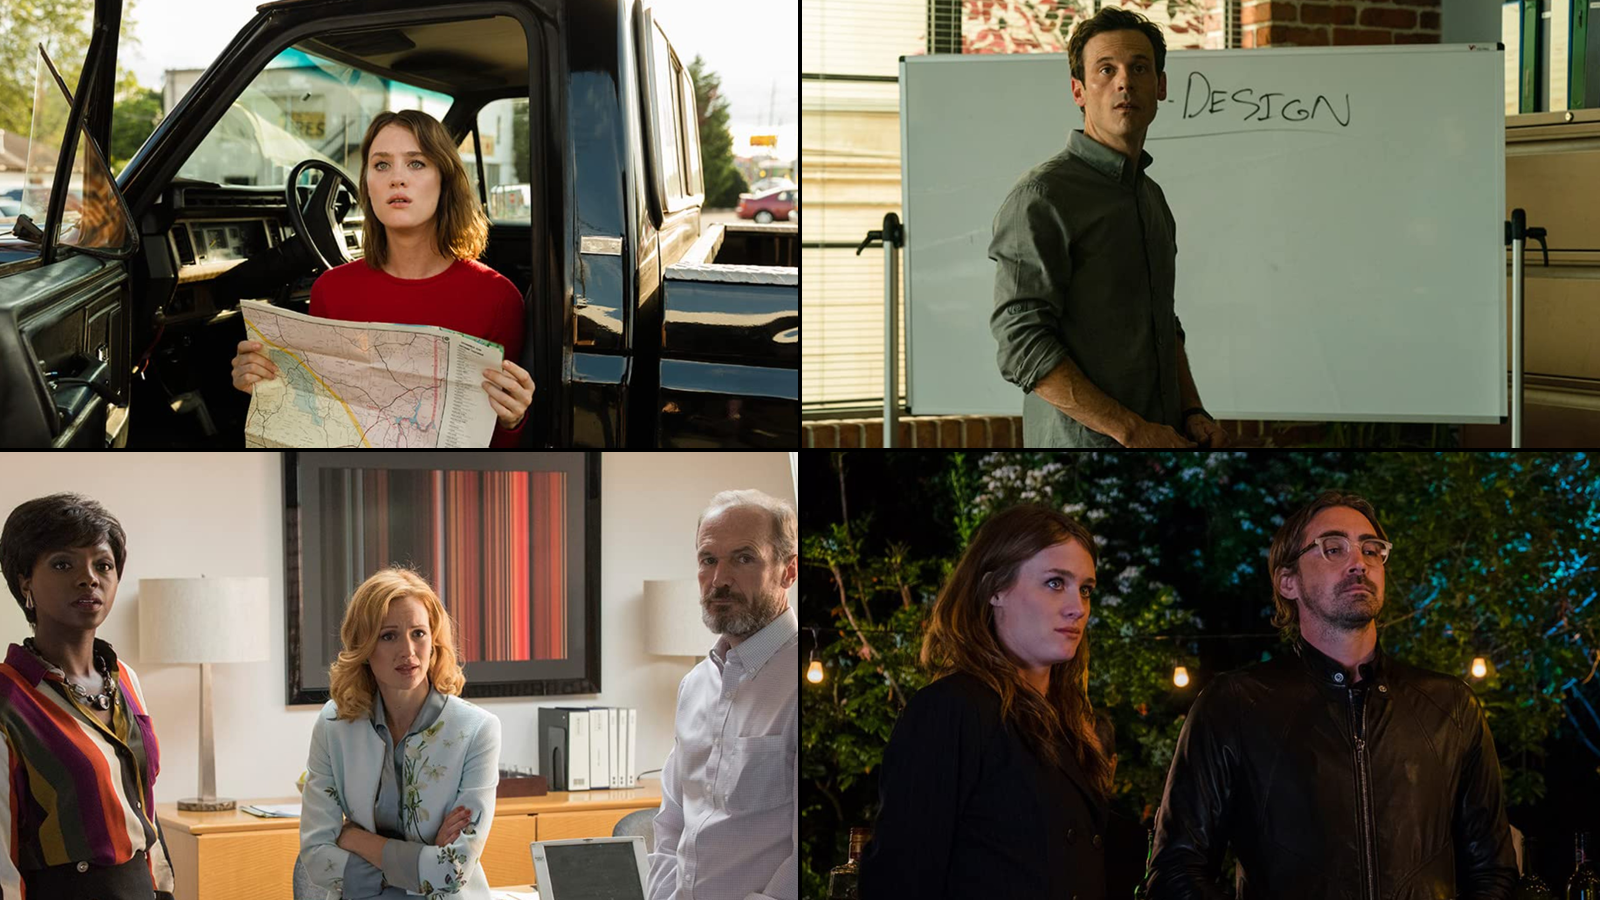 Shots from the later seasons of the show, featuring the four main characters.